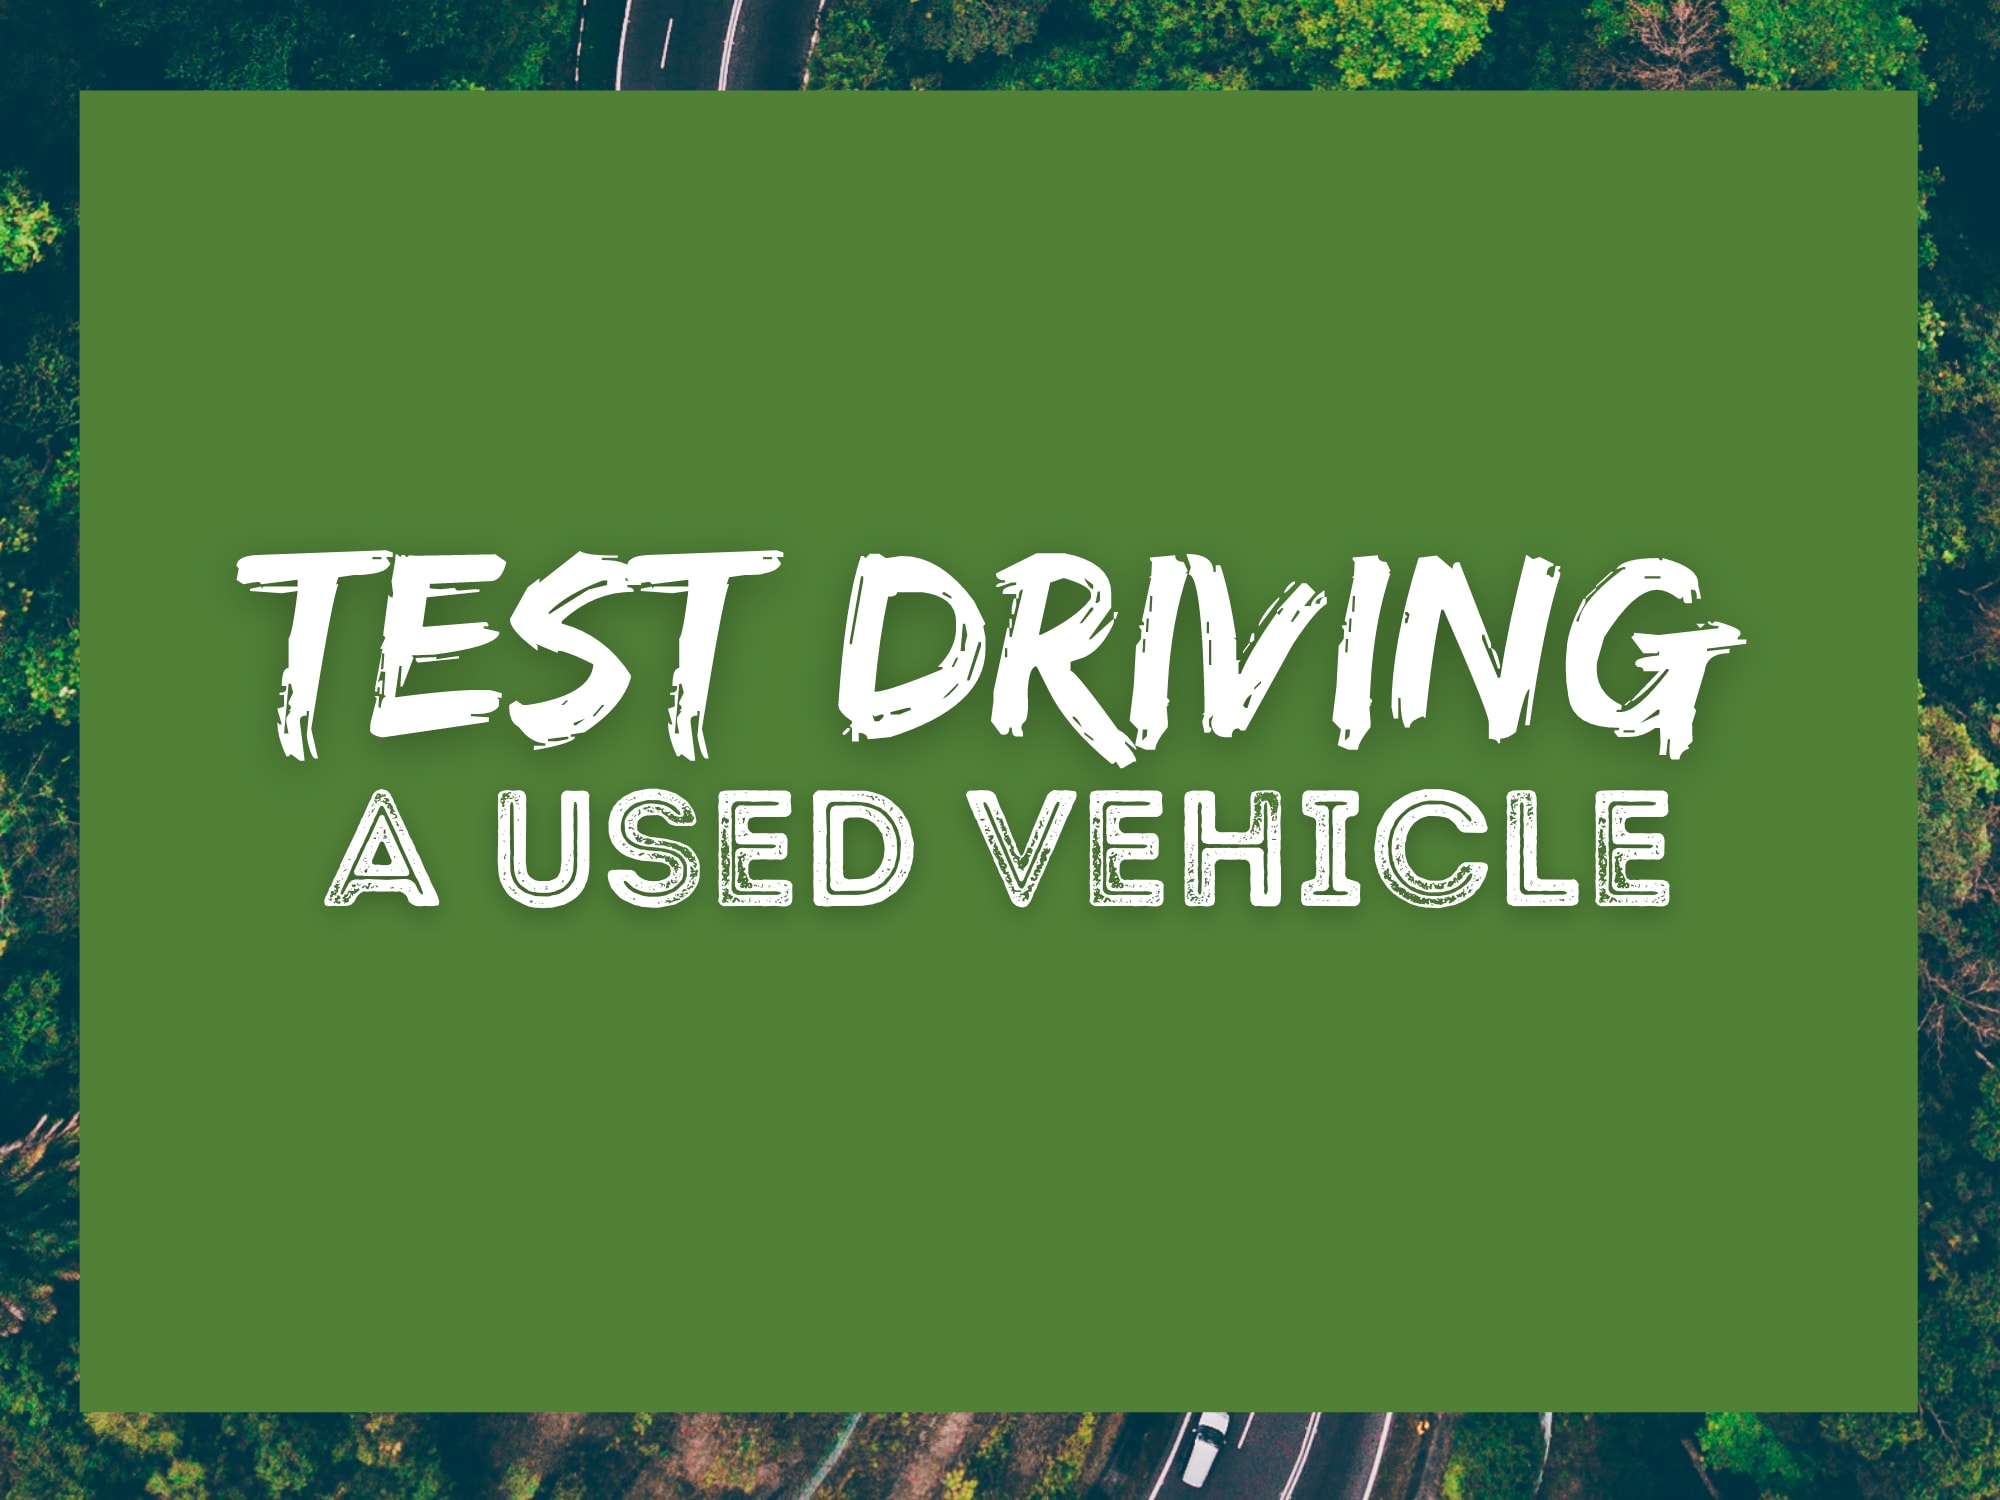 """Green background with forest and road border with words """"Test Driving"""" a vehicle with white font in the center"""